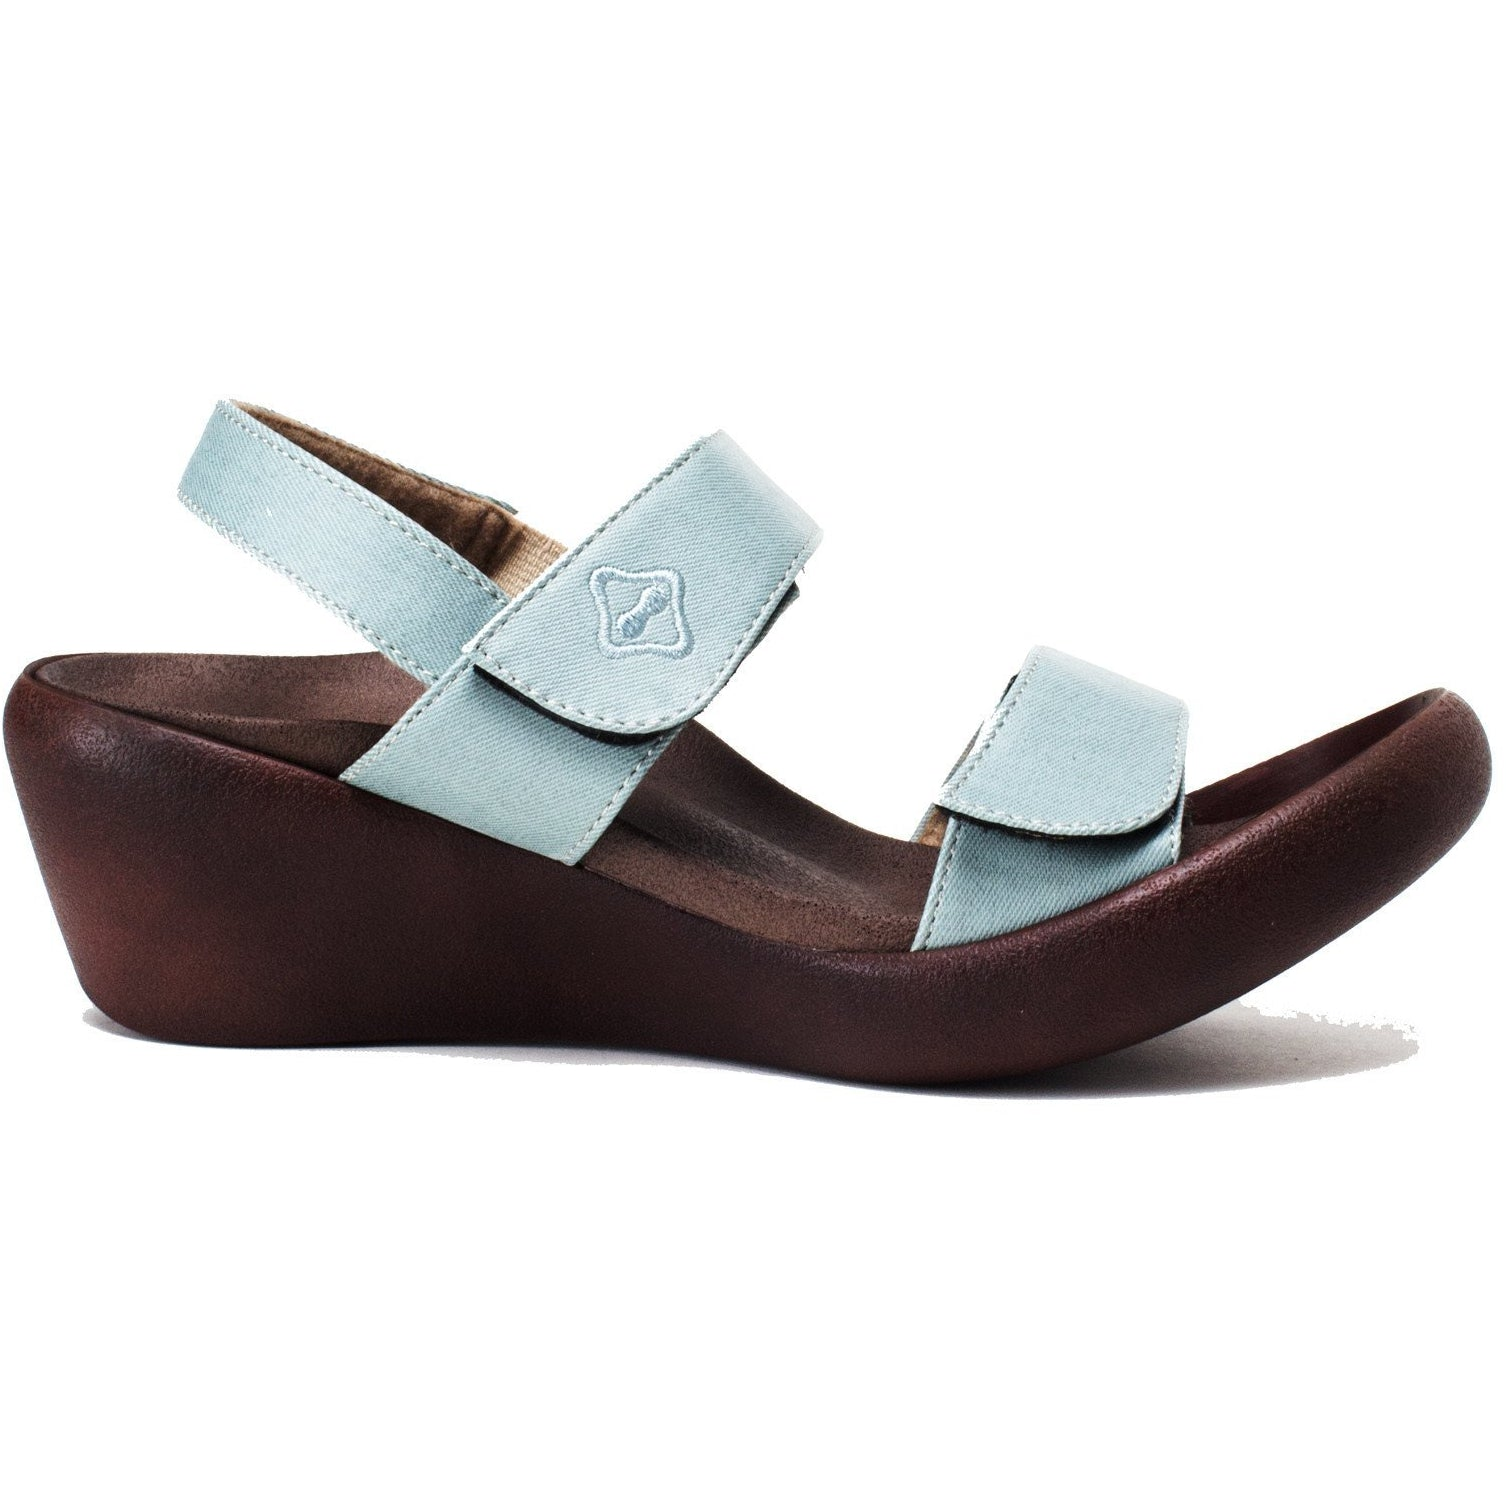 RegettaCanoe Women's Low Wedge Clover Sandals